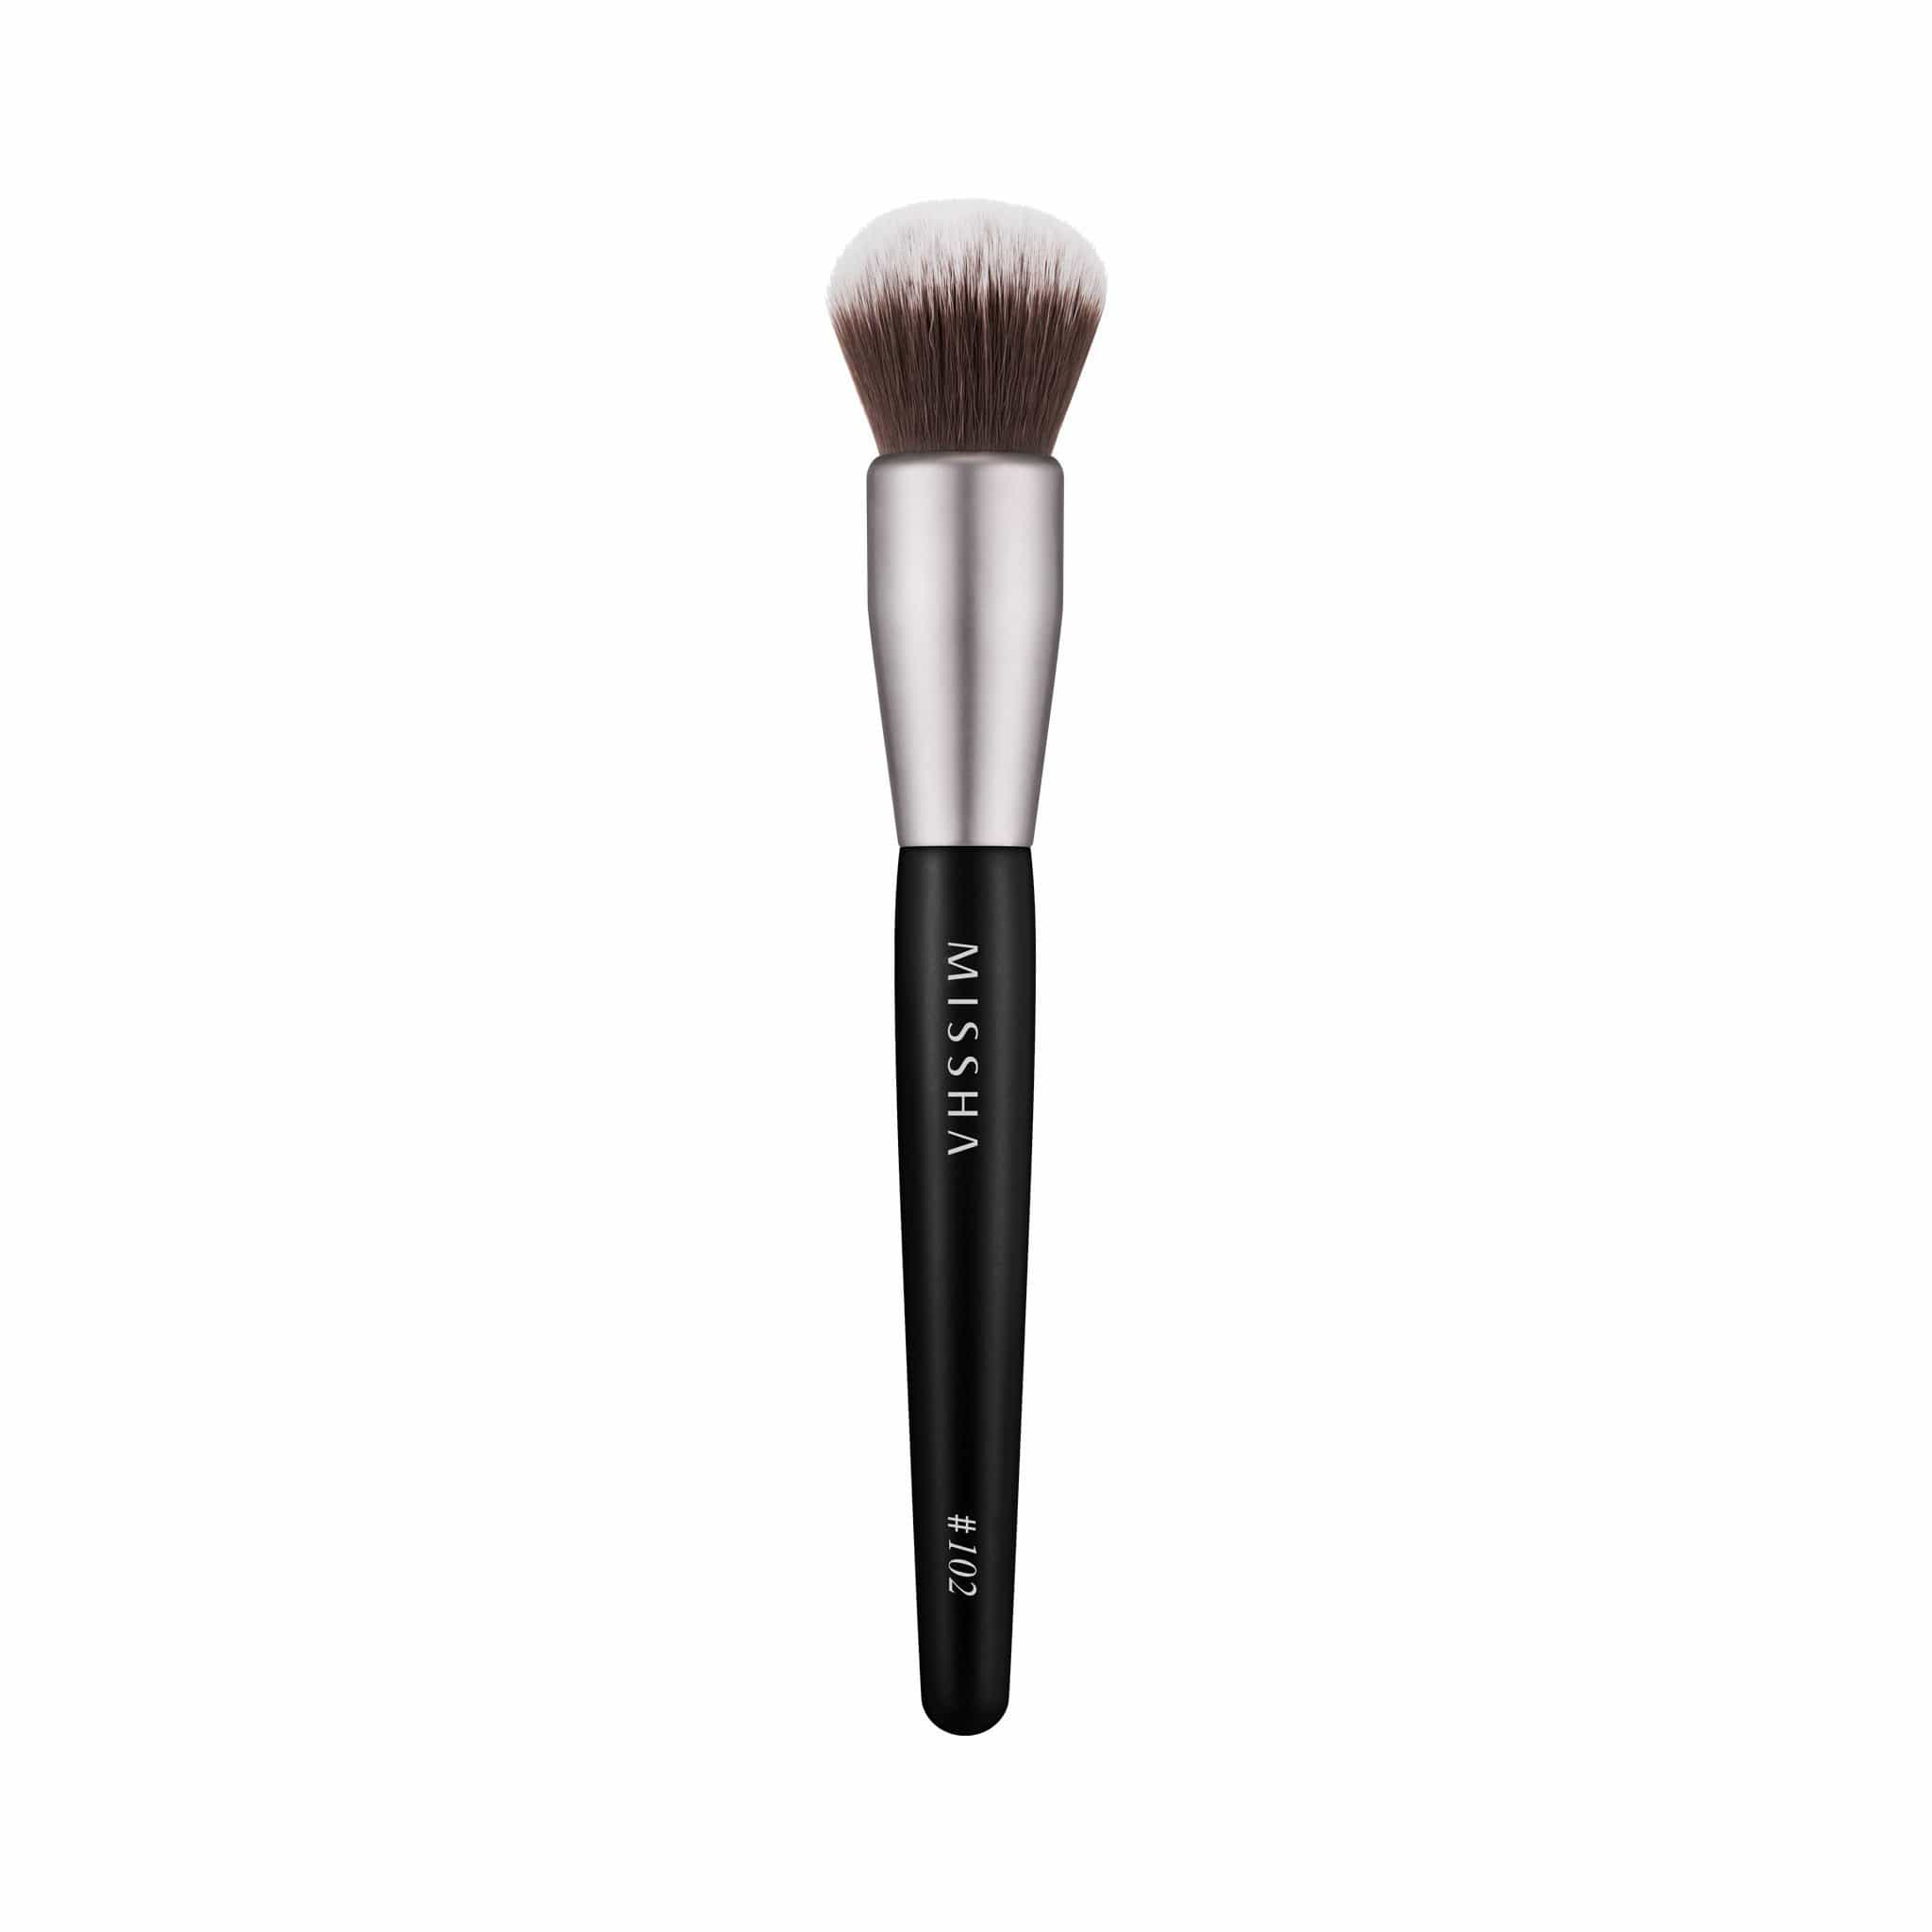 ARTISTOOL FOUNDATION BRUSH #102 - MISSHA